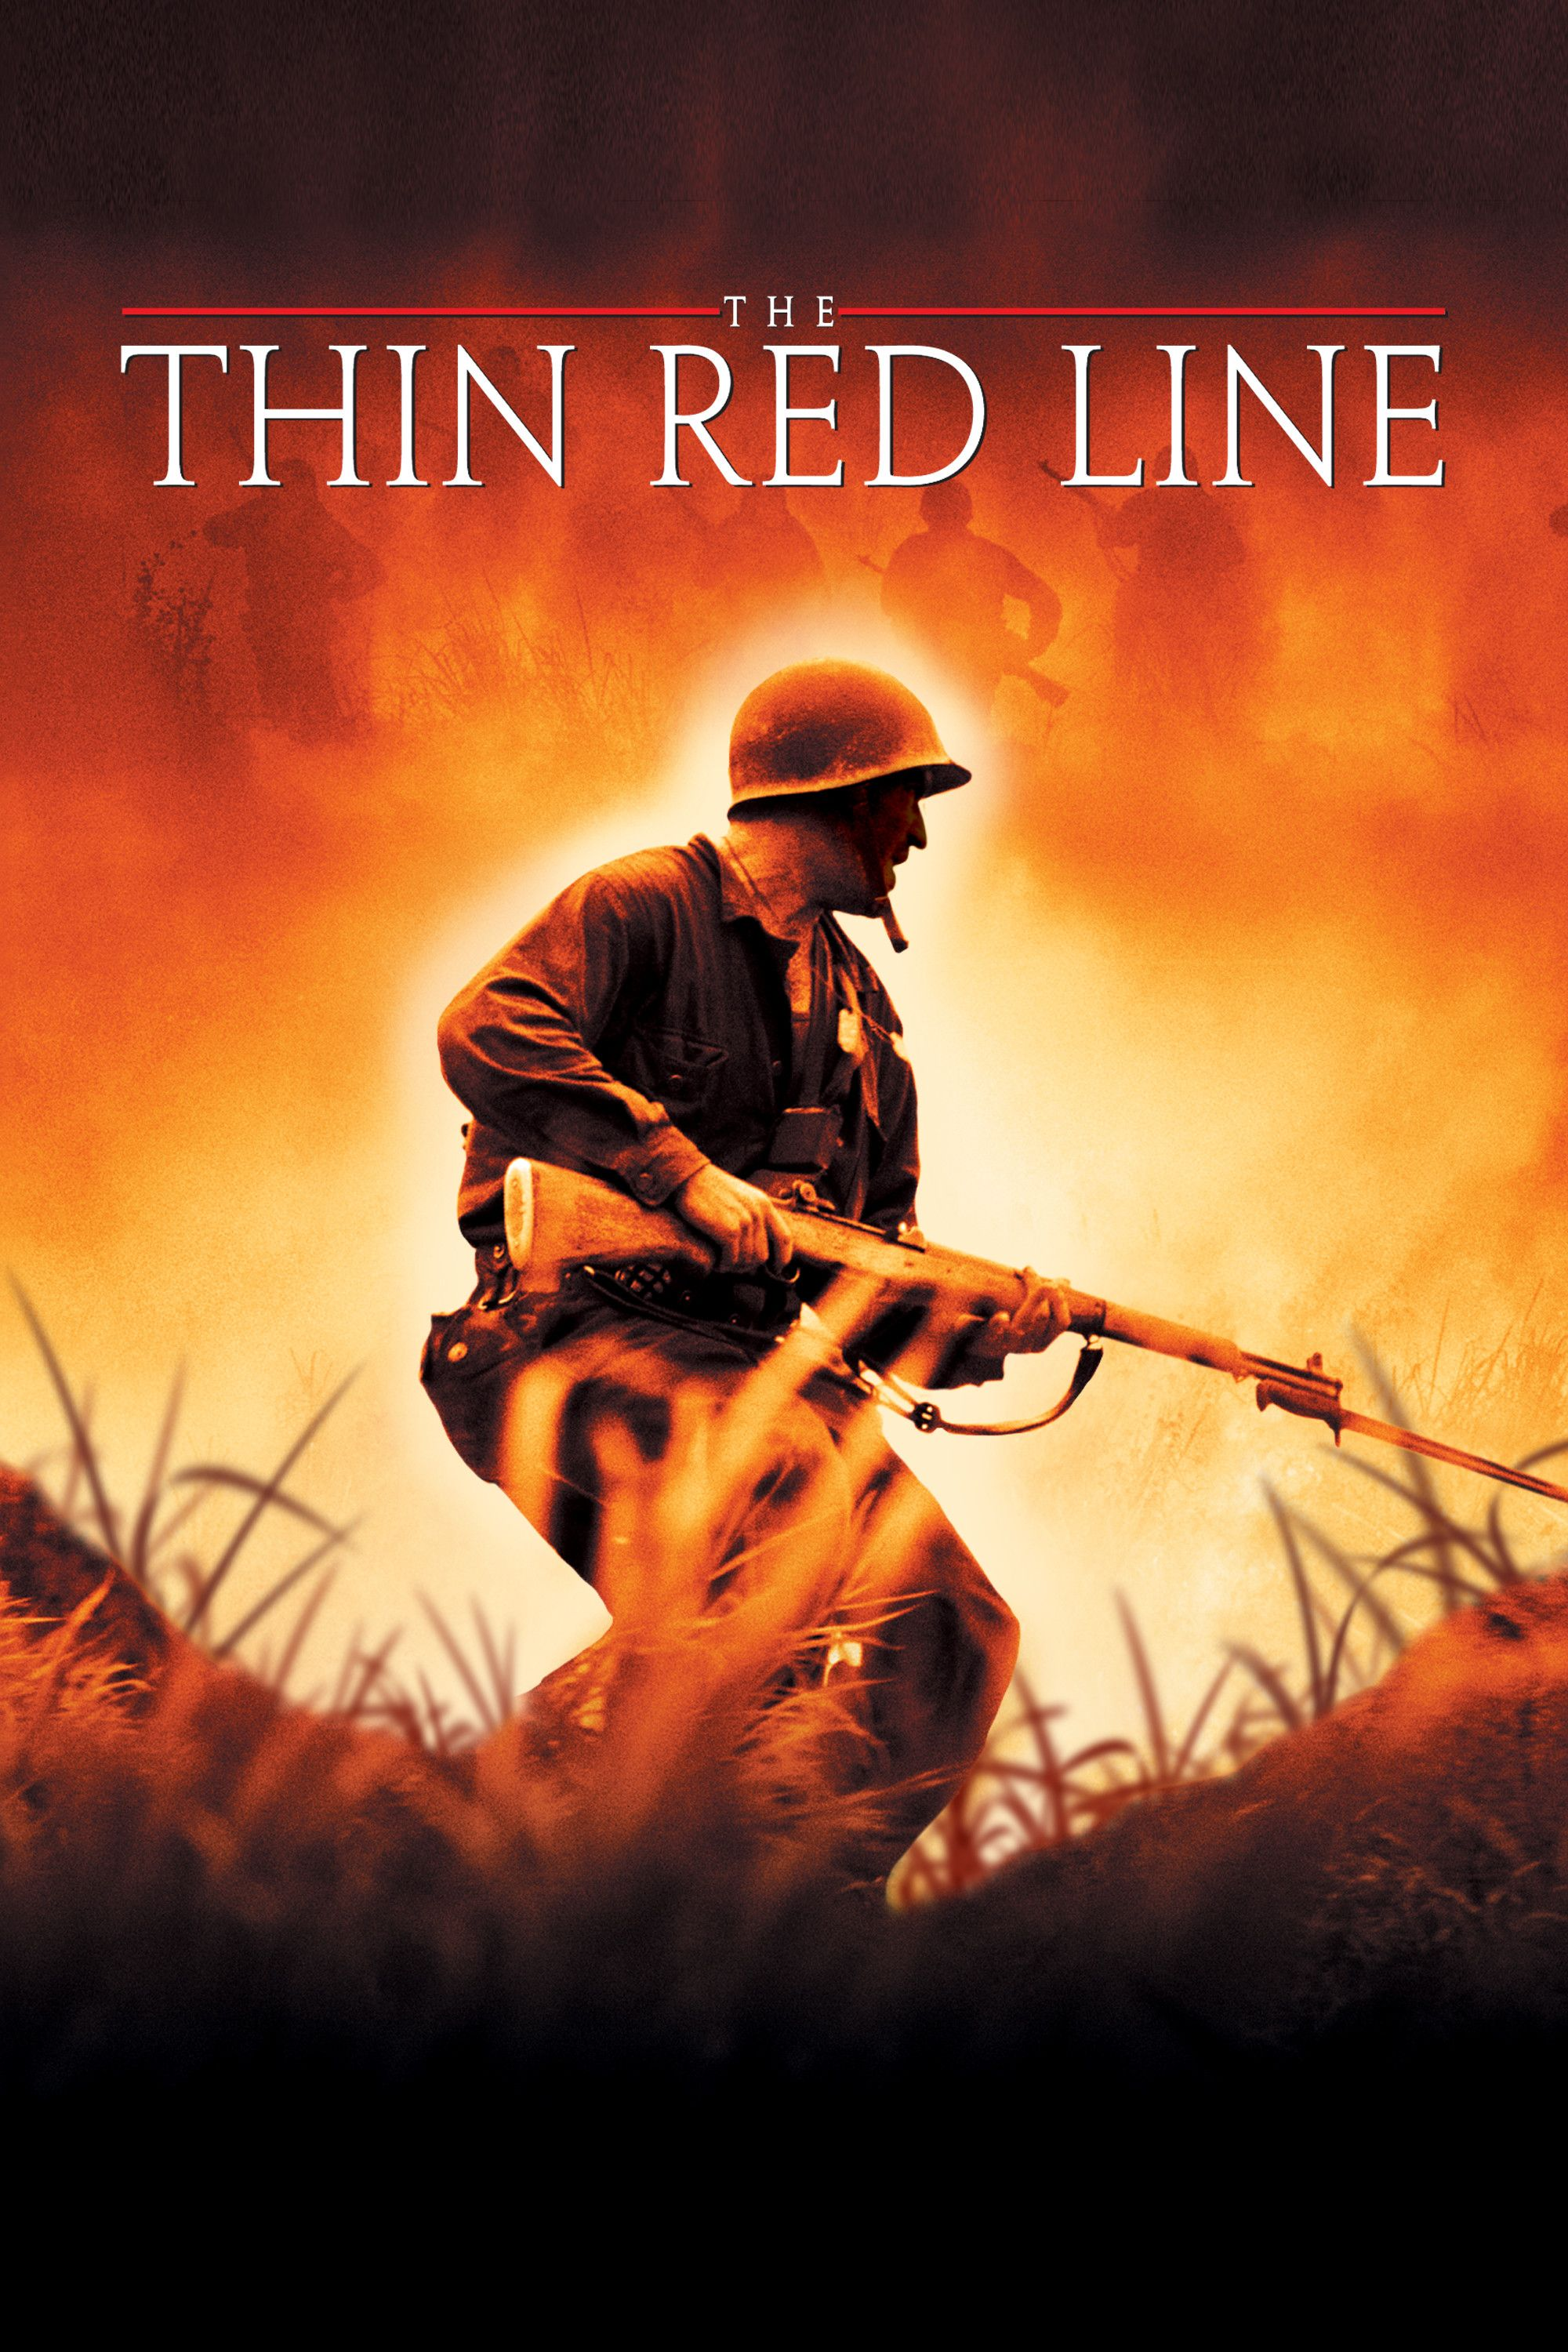 red line hd movie download